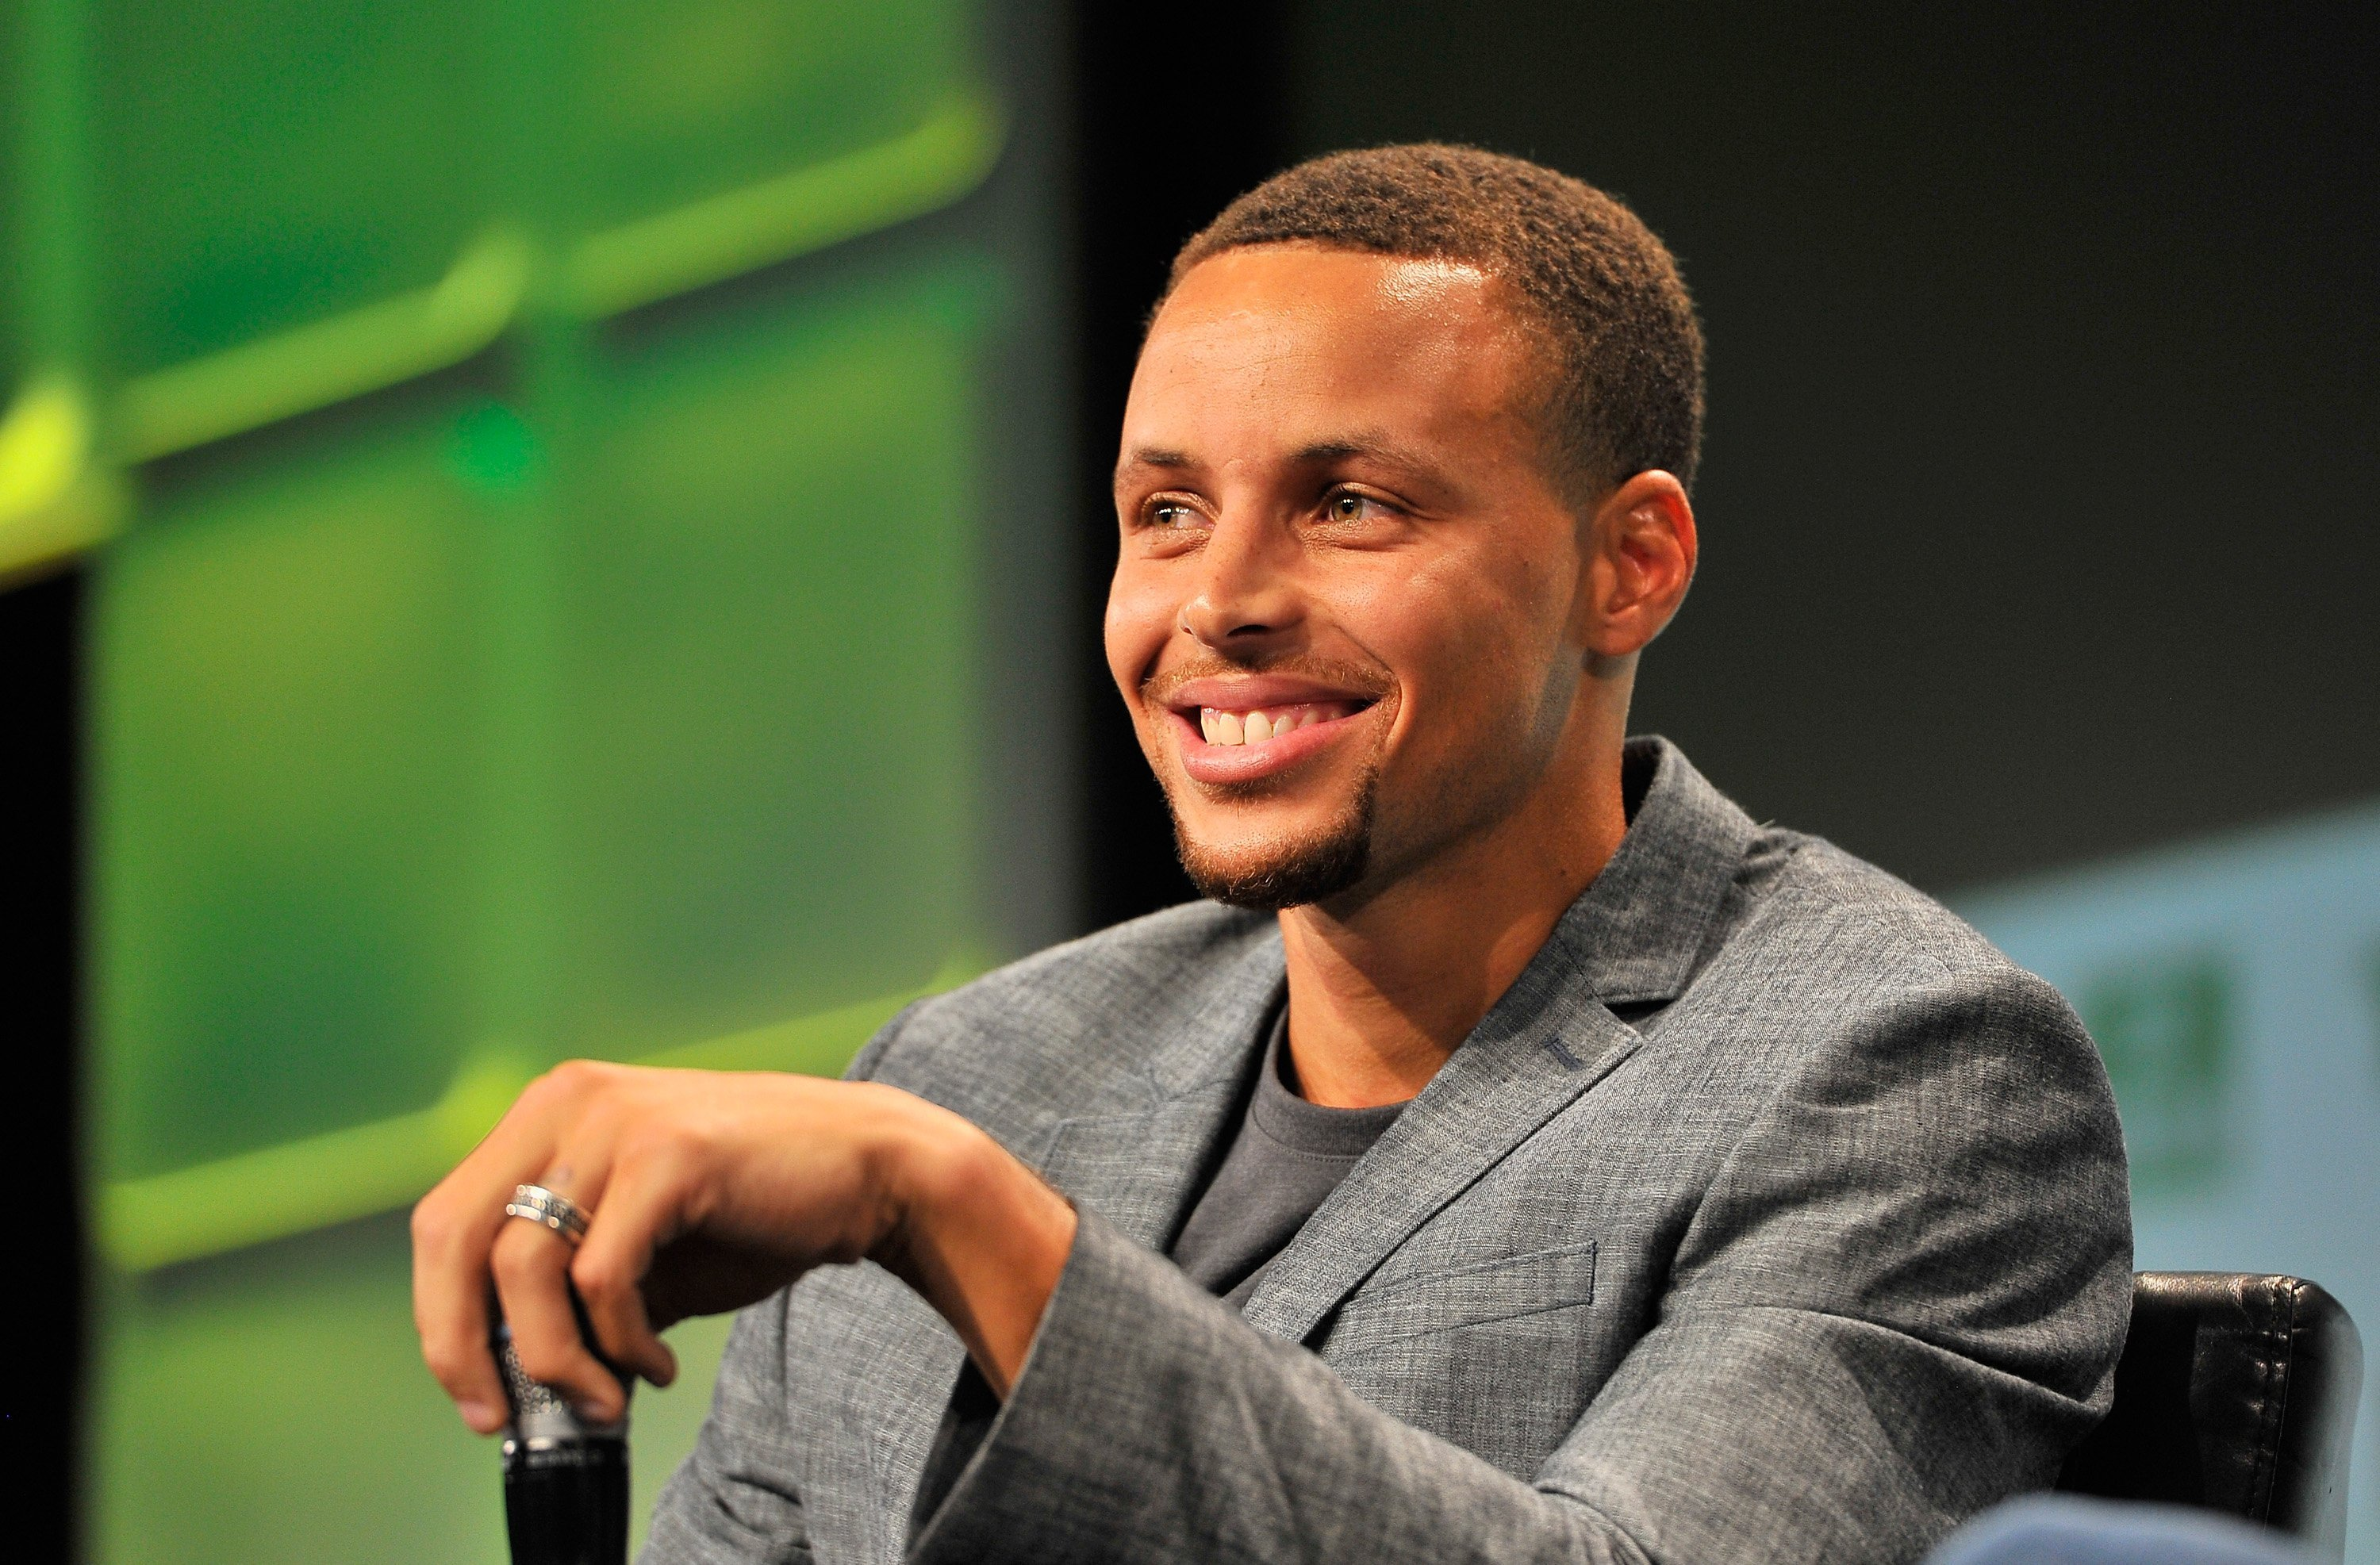 Stephen Curry onstage during the TechCrunch Disrupt SF 2016. | Photo: Getty Images